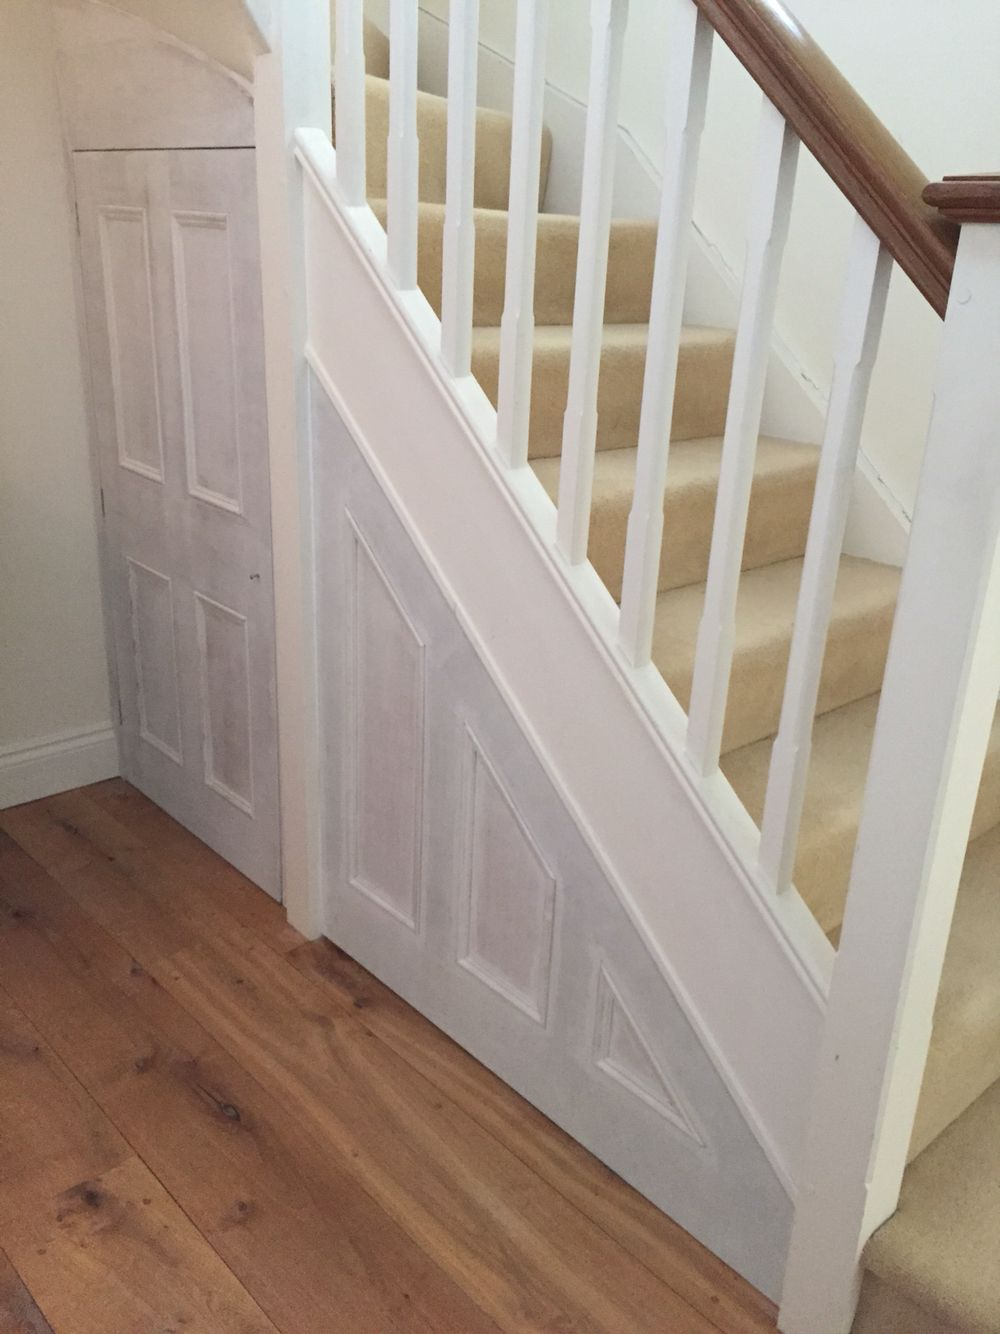 Under Stairs Panel And Door Made And Fitted Ready For Painting | A T E L I  E R C A B I N E T M A K E R S | Pinterest | Doors And House